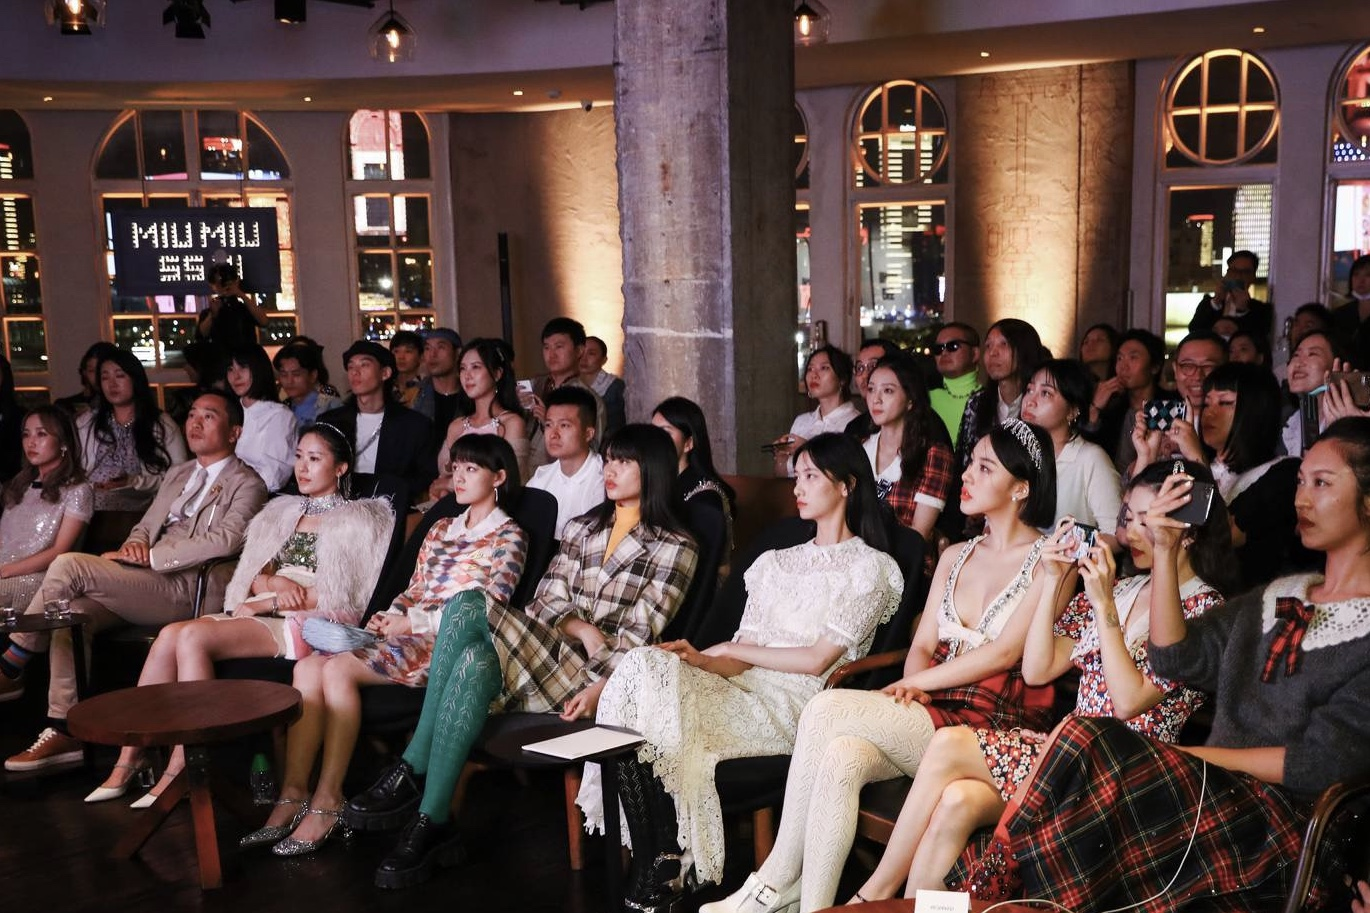 Miu Miu viewing event at Mercato by Jean Georges on the bund in Shanghai